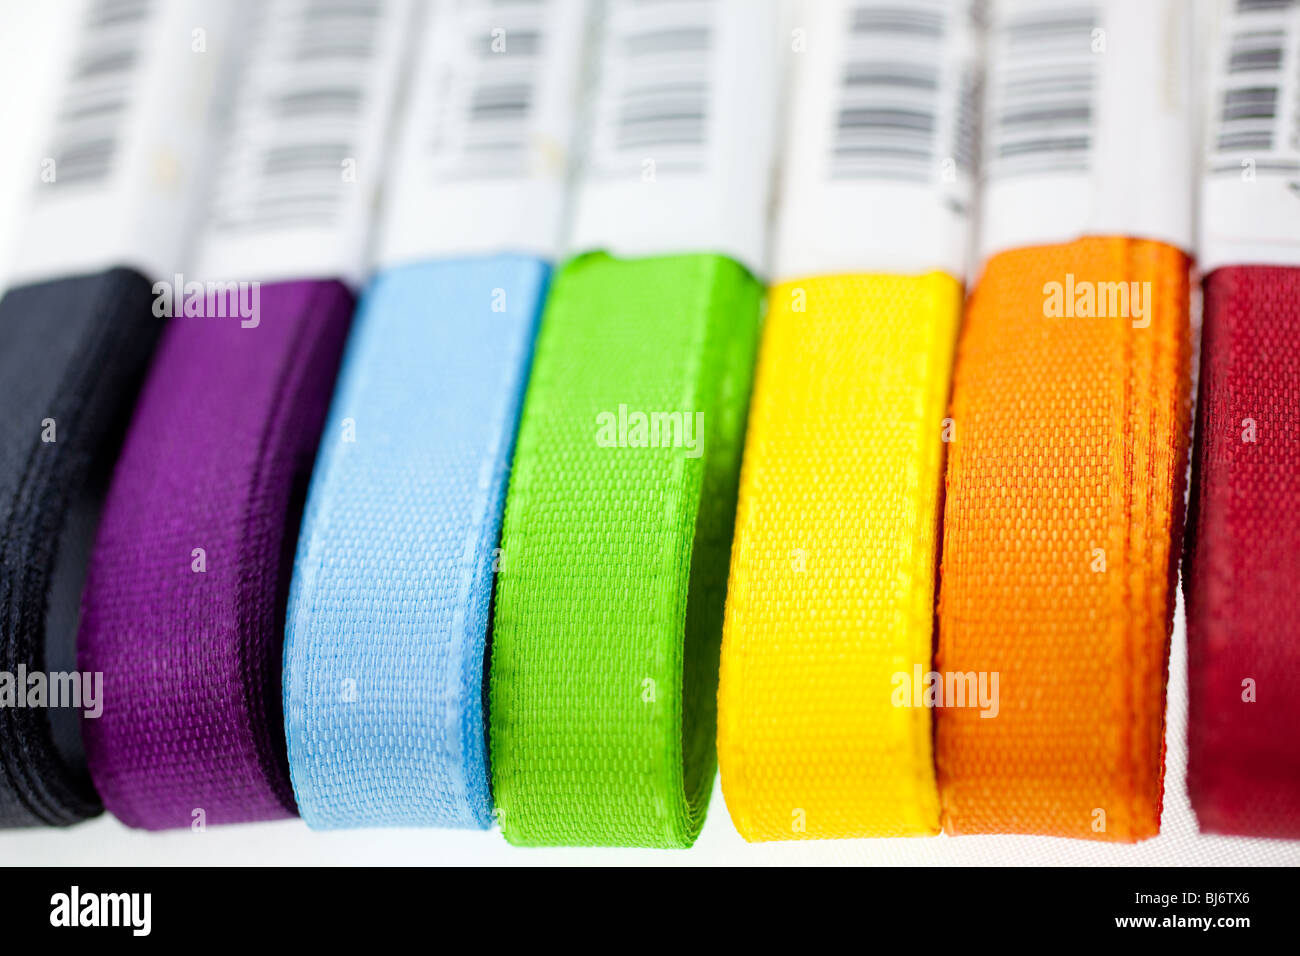 seven rainbow colored ribbons on white background. closeup - Stock Image